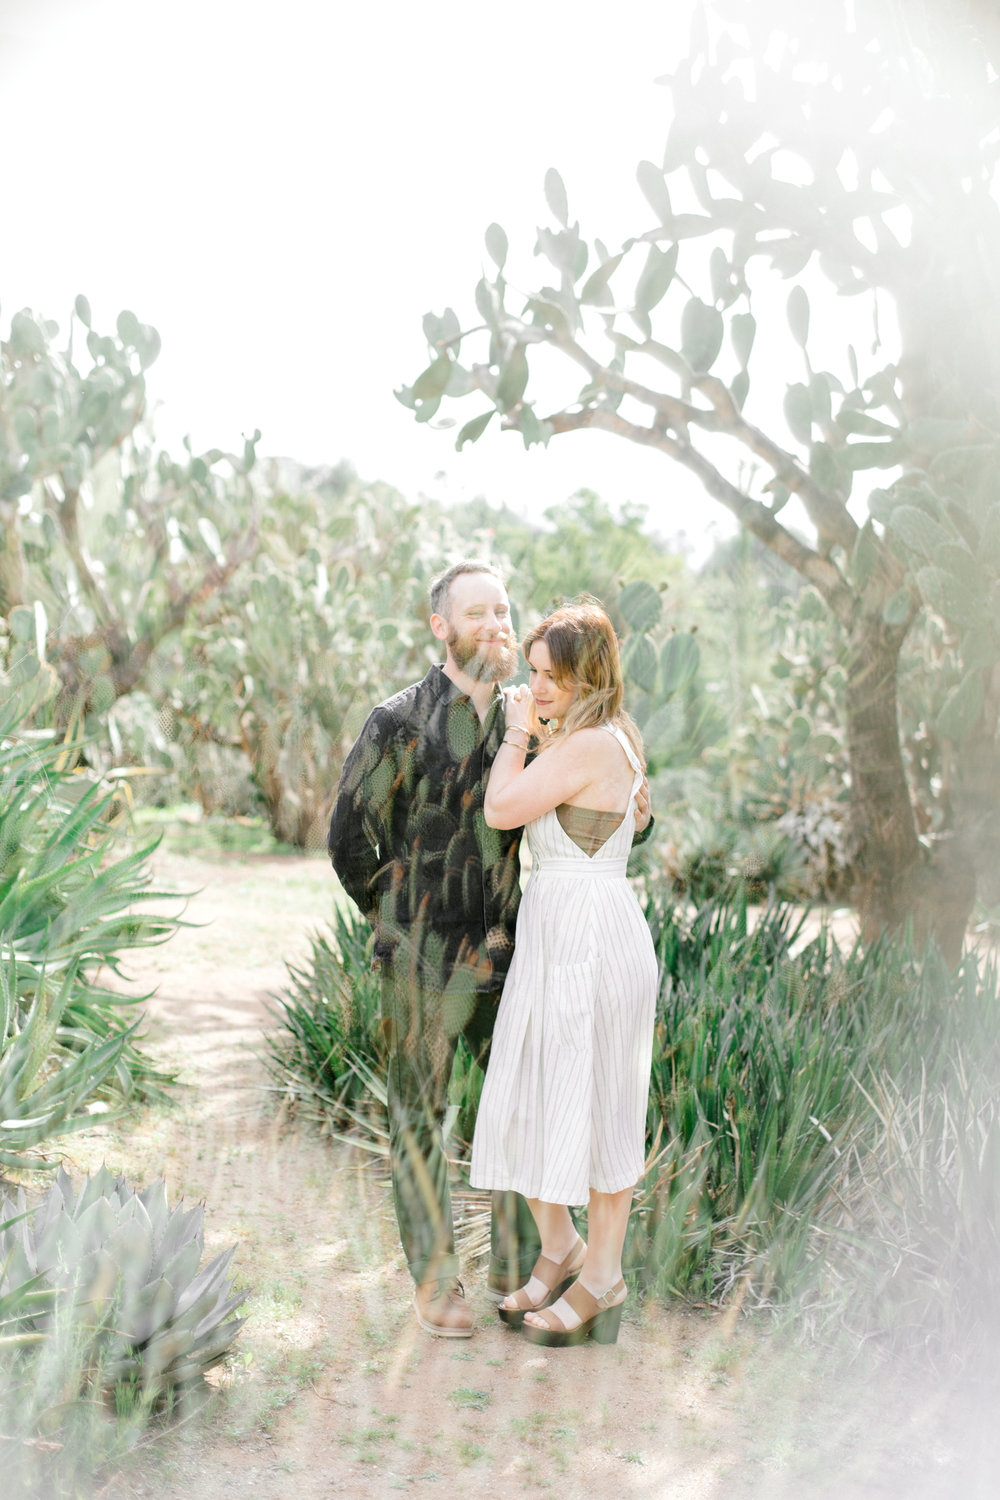 jessica sgubin photography atlanta portrait photographer cacti garden engagement family couple wedding joshua tree wedding elopement-1-4.jpg